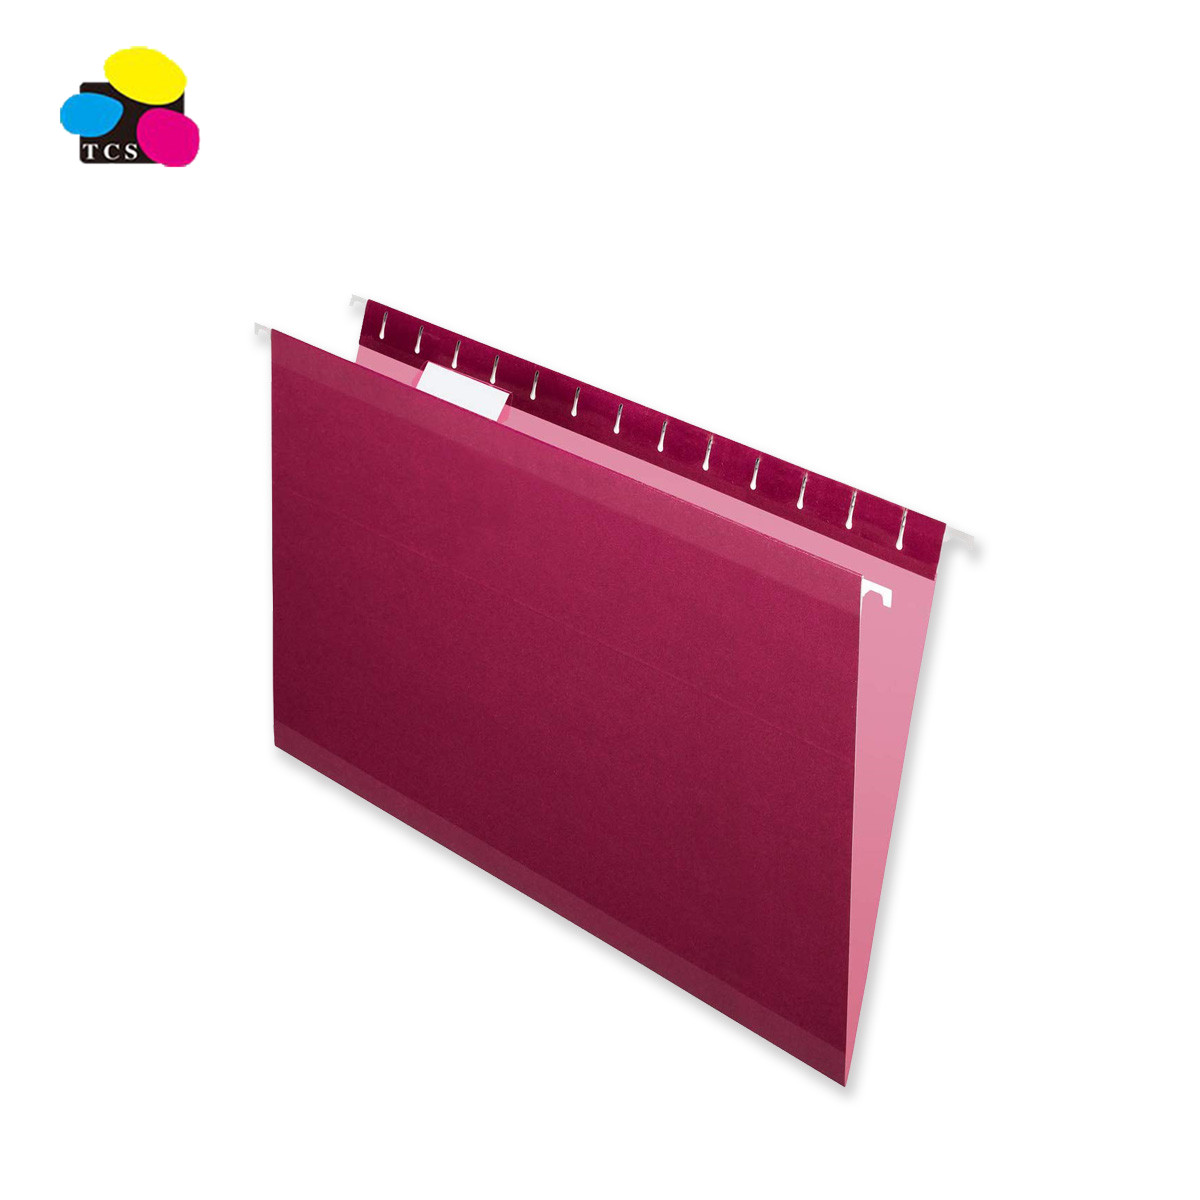 Chinese Supplier 3 Poly Reinforced Taps 180/230gsm White/Kraft Paper A4/FC Size Assorted Bright Color Suspension File Folders